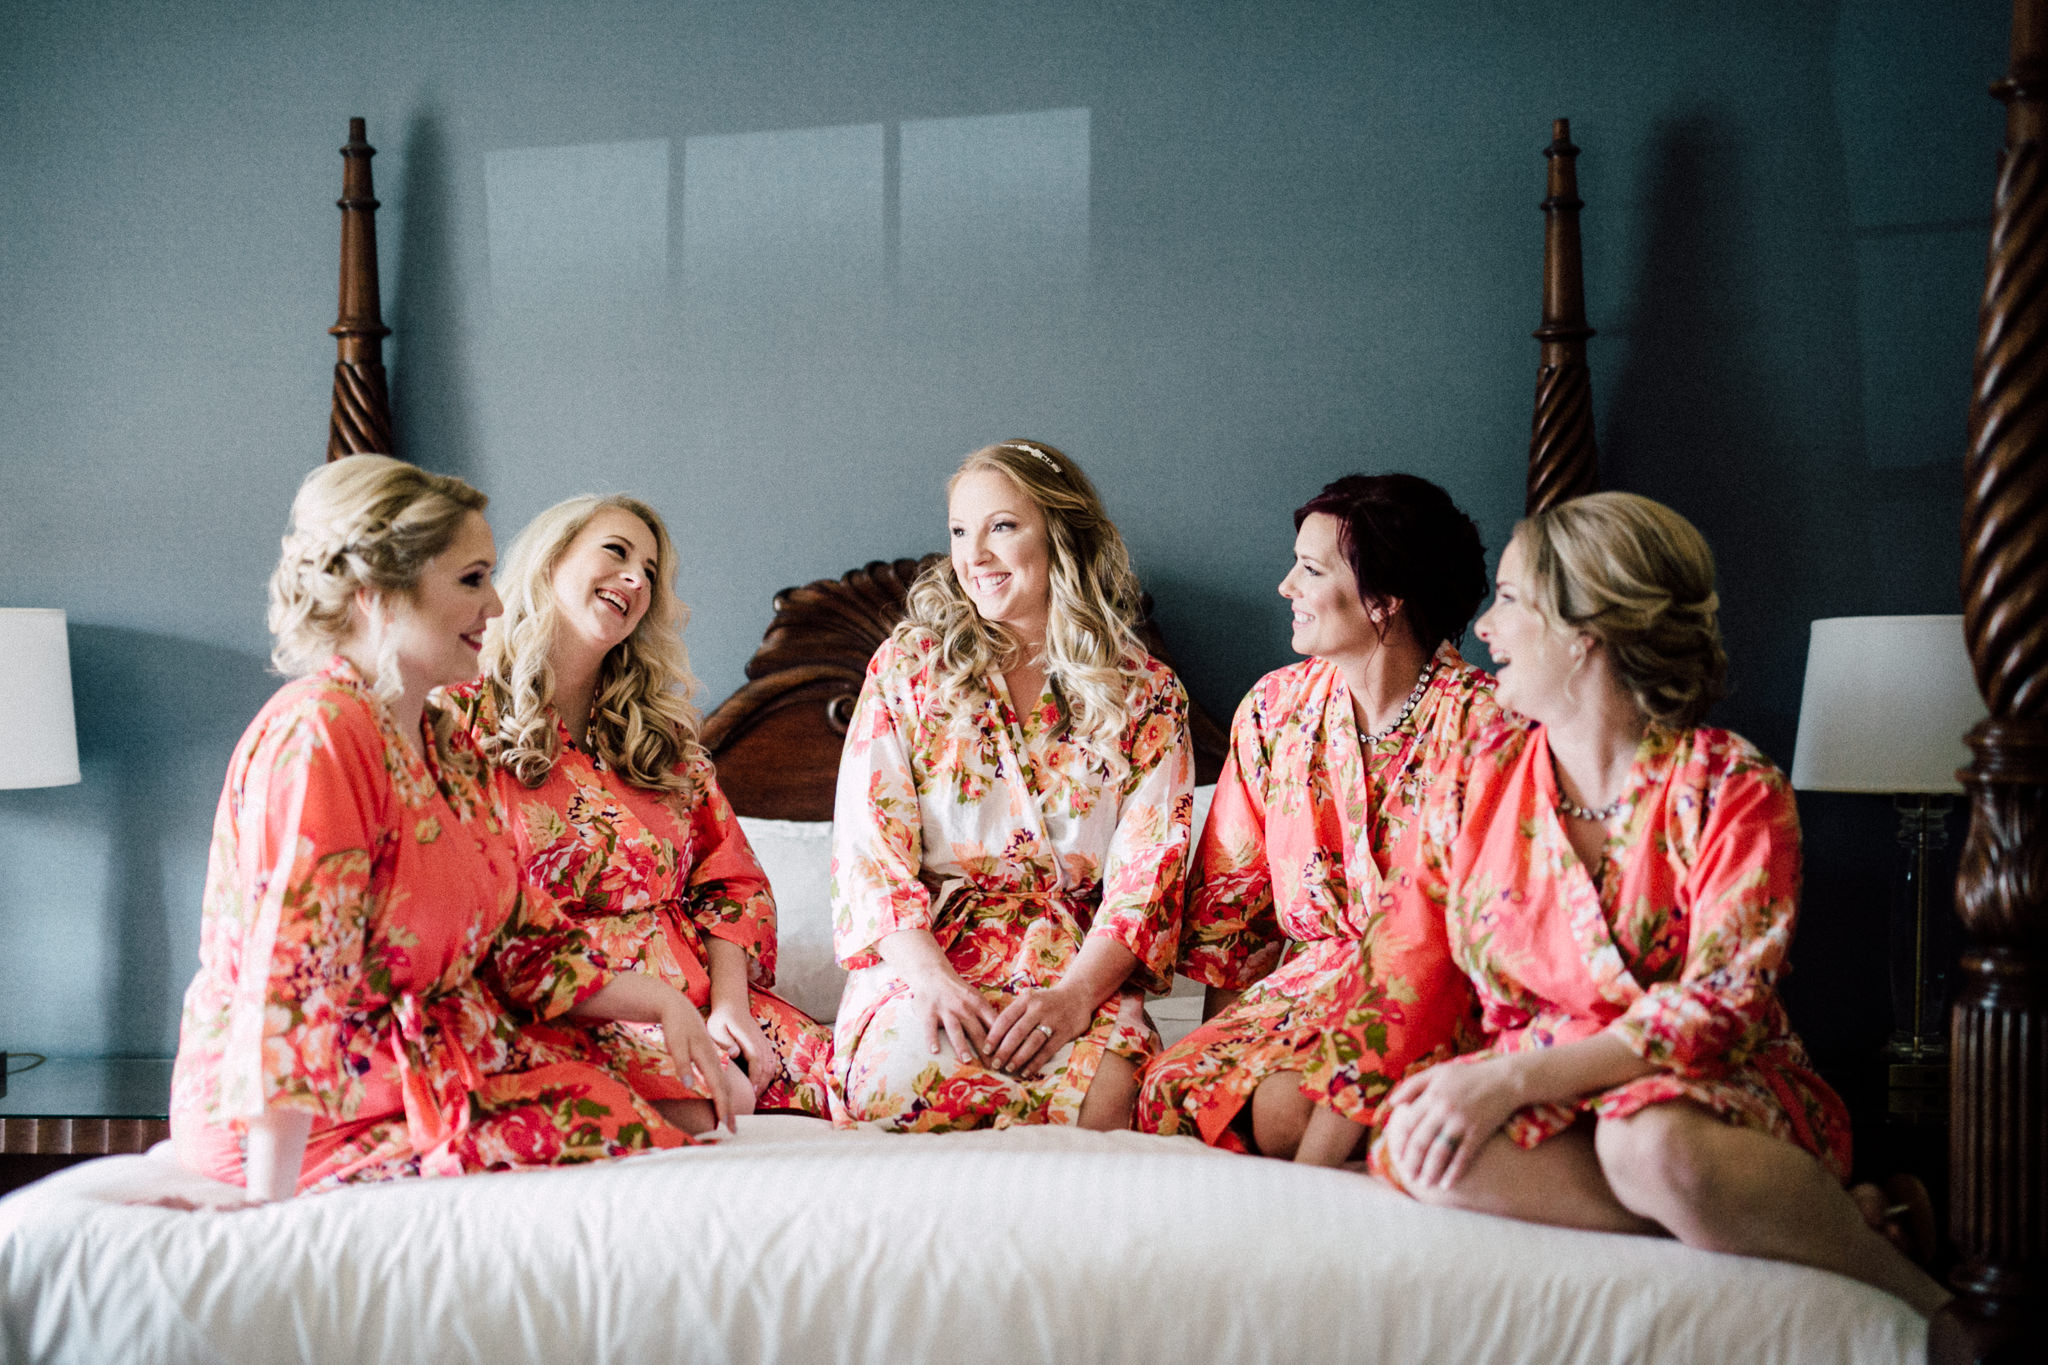 Queens-Landing-Niagara-on-the-Lake-Wedding-photography-by-Simply-Lace-001.JPG